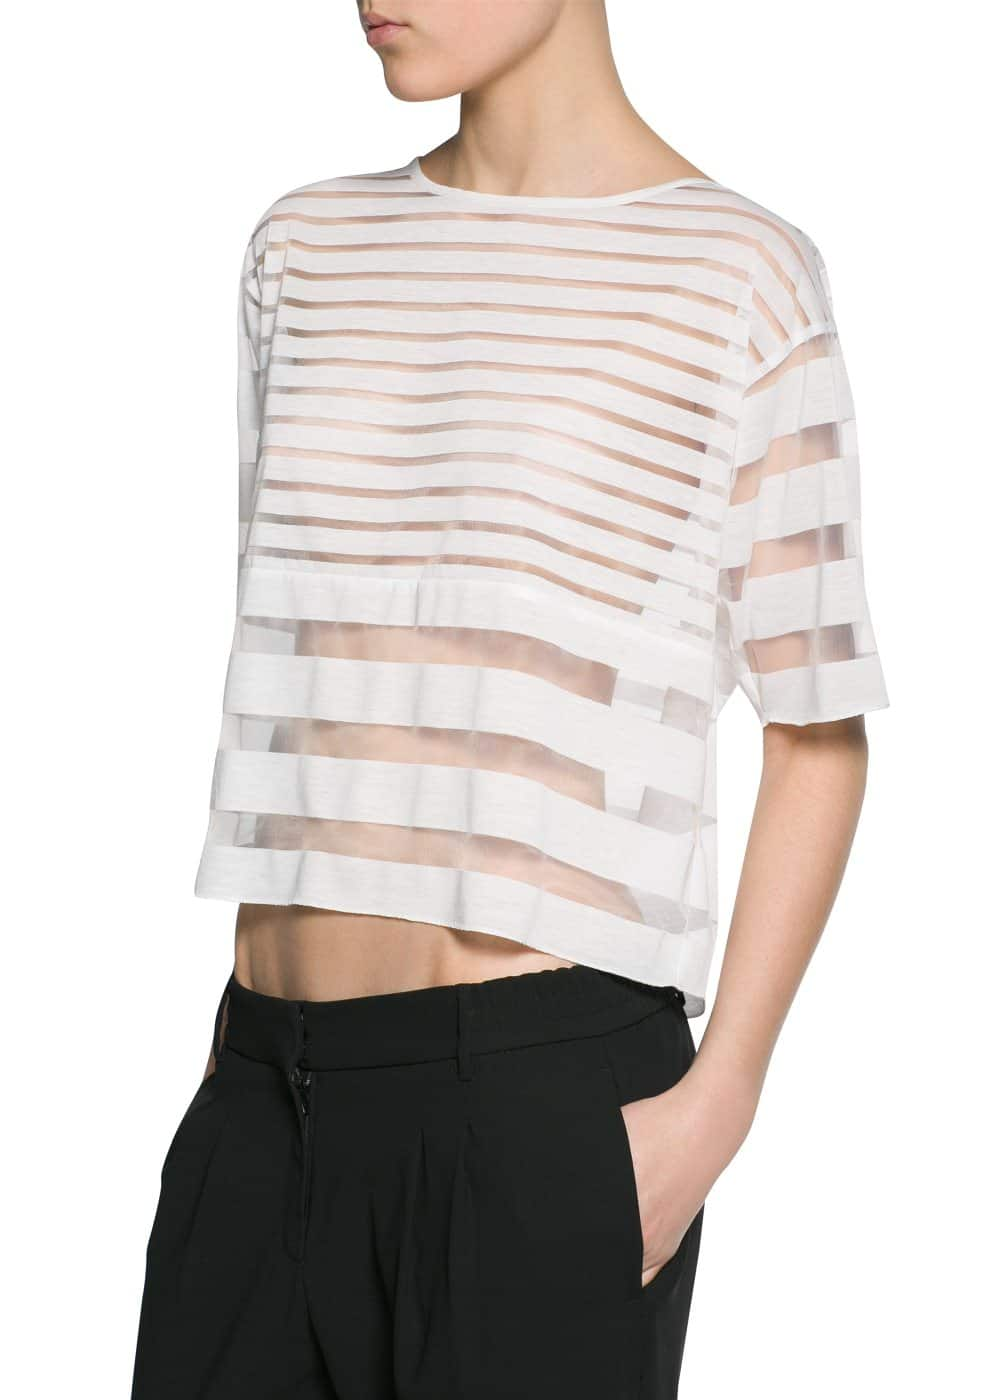 Transparent striped t-shirt